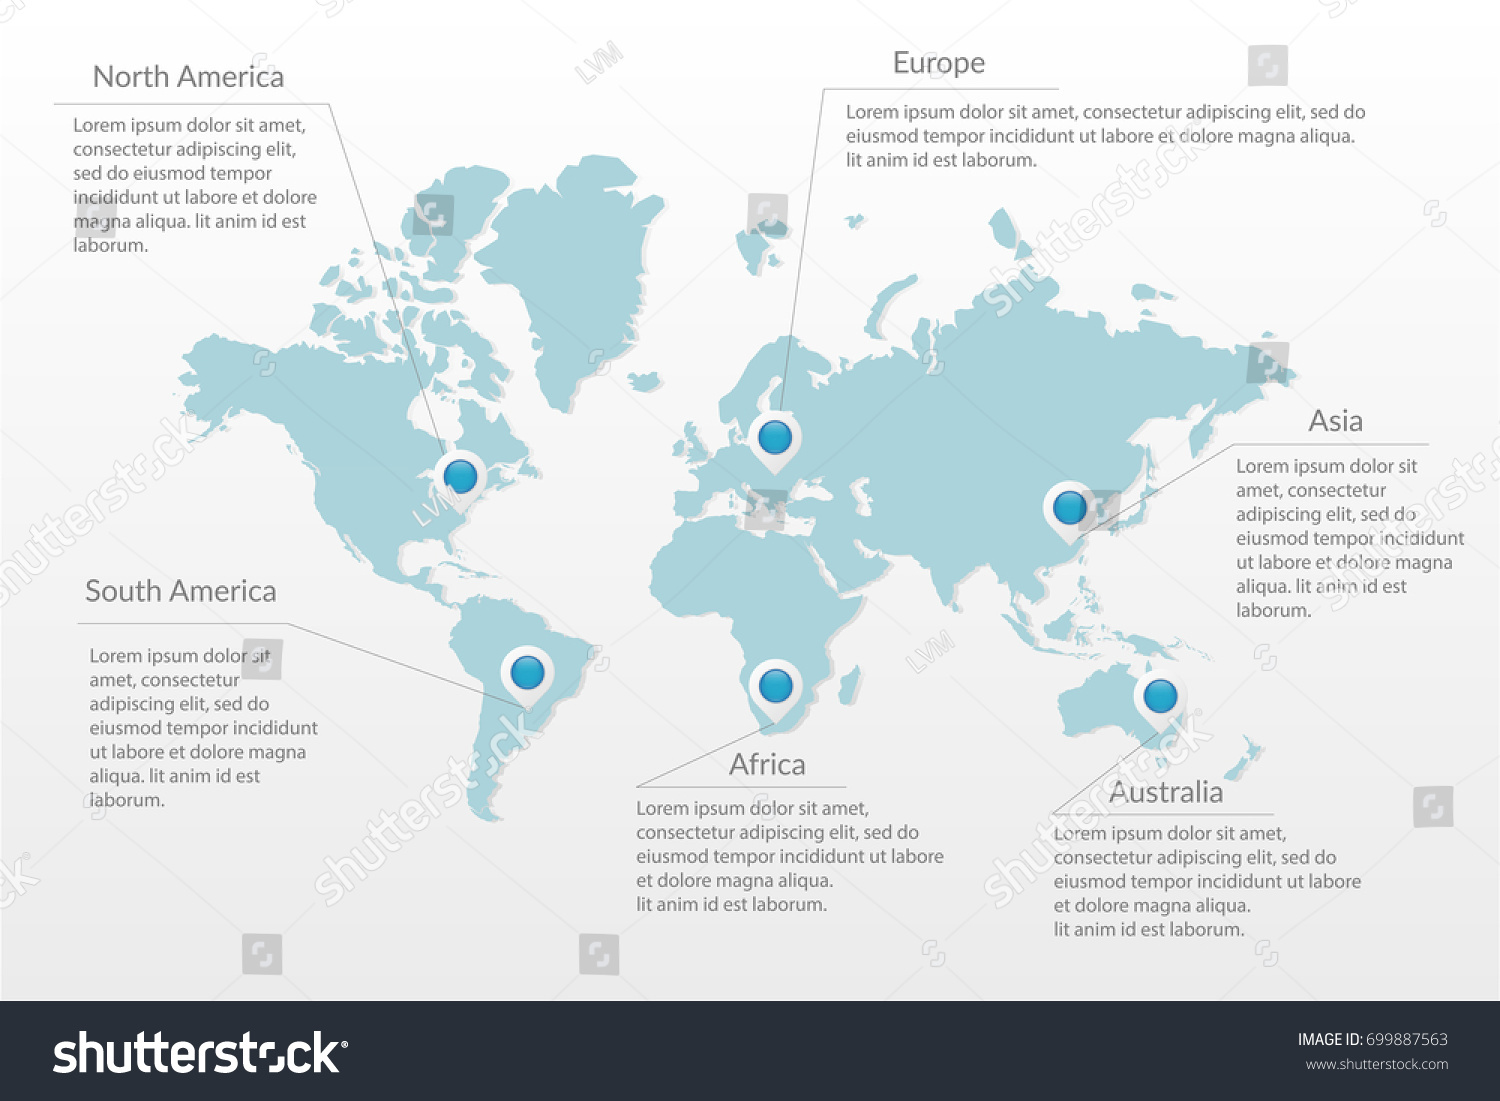 Vector World Map Infographic Symbol North Stock Vector - Australia map infographic